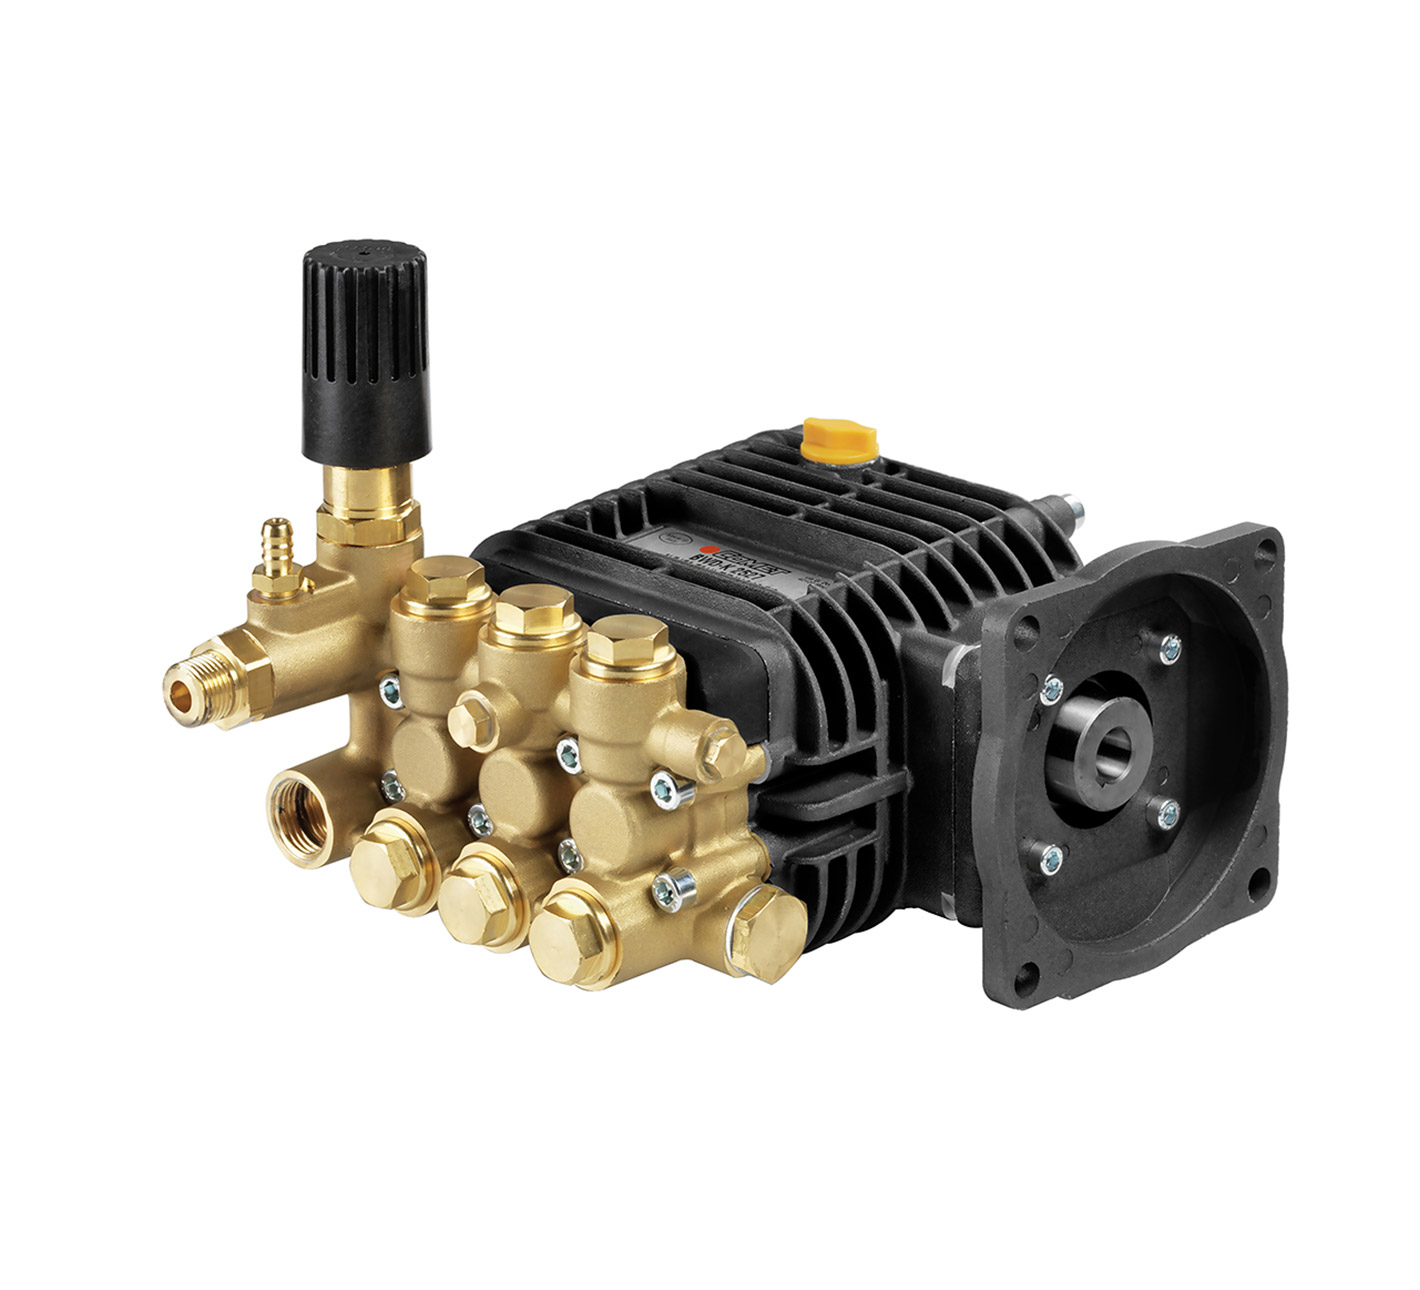 bwd k e5/8 Comet Industrial Pumps